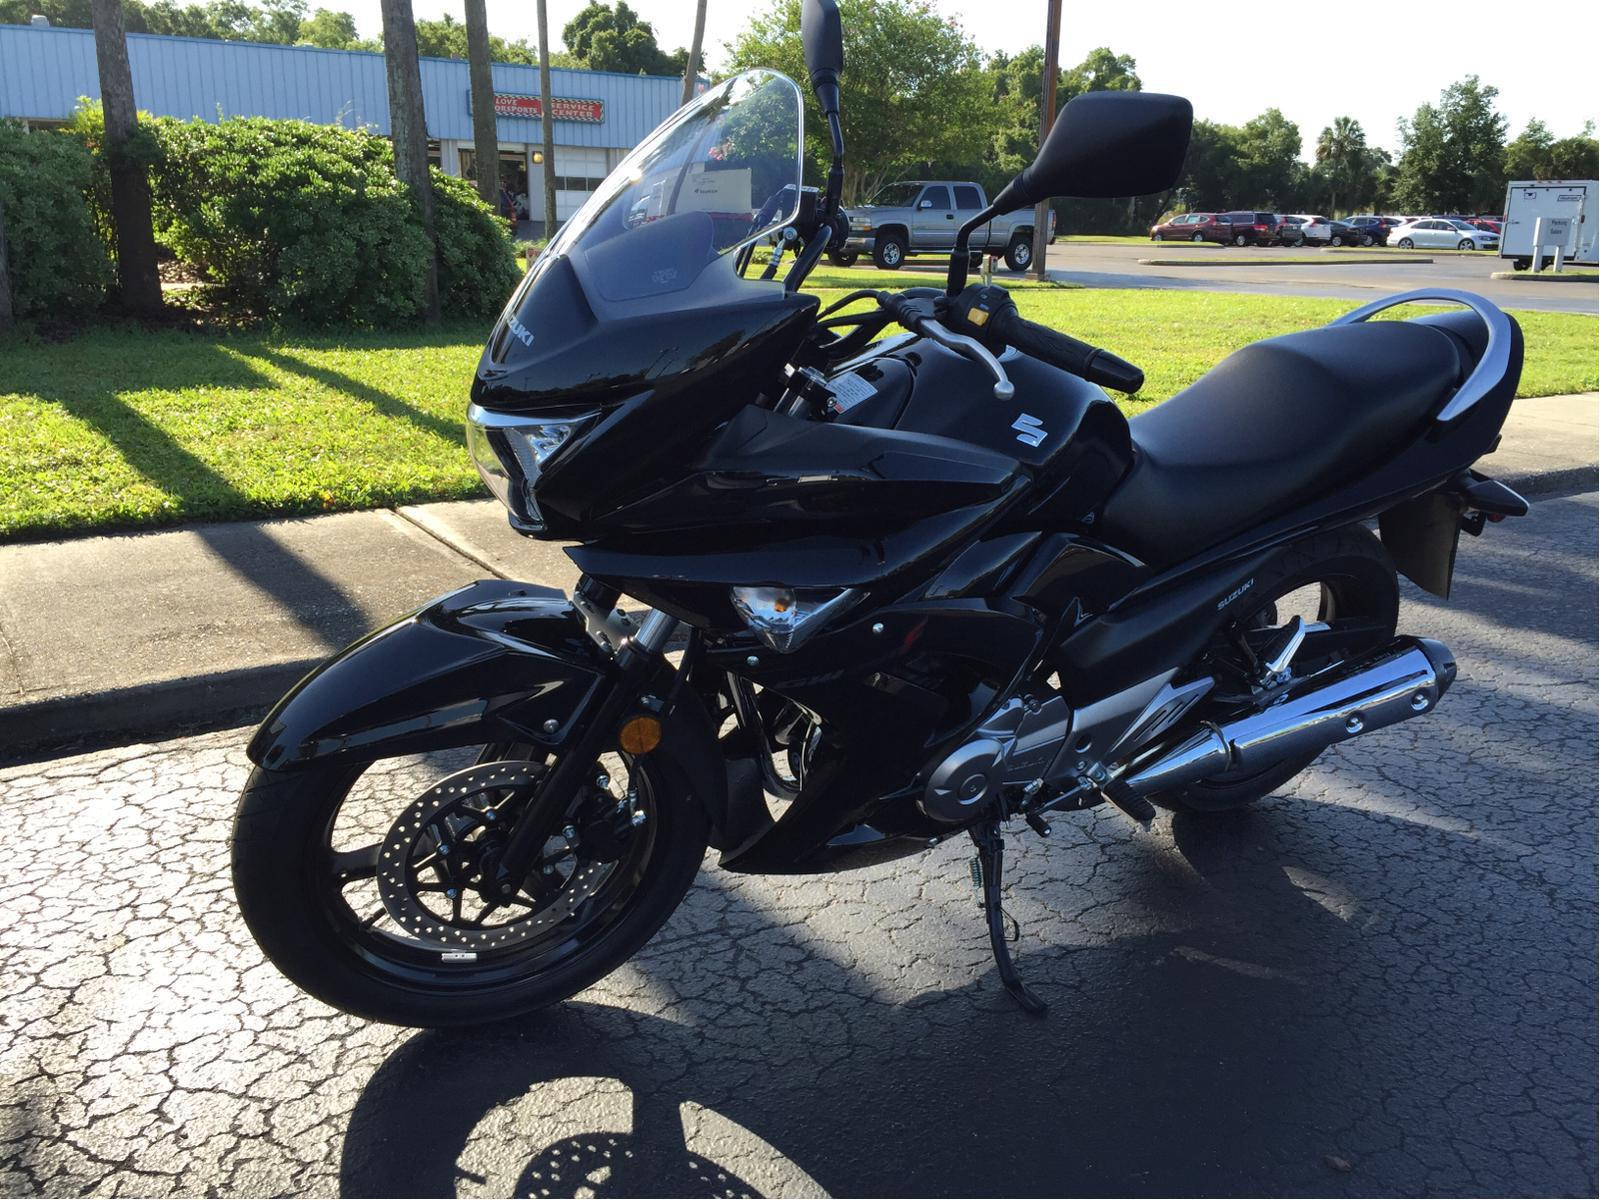 in-stock new and used models for sale in homosassa, fl love